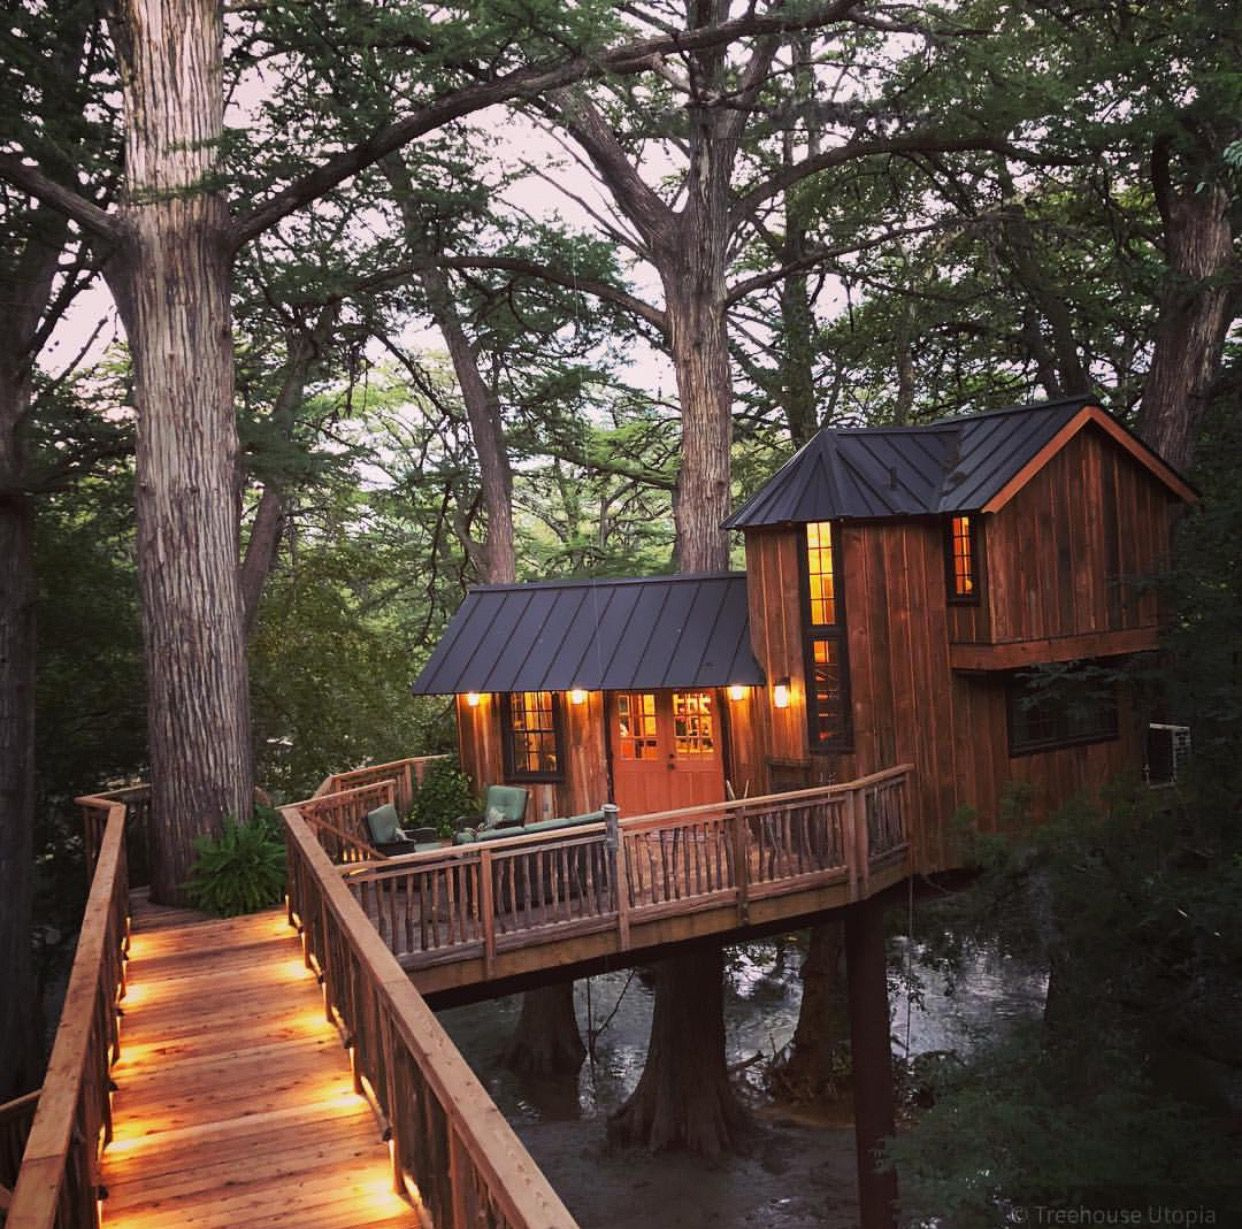 Love This Tree House Pete Nelson Built For Tree House Utopia